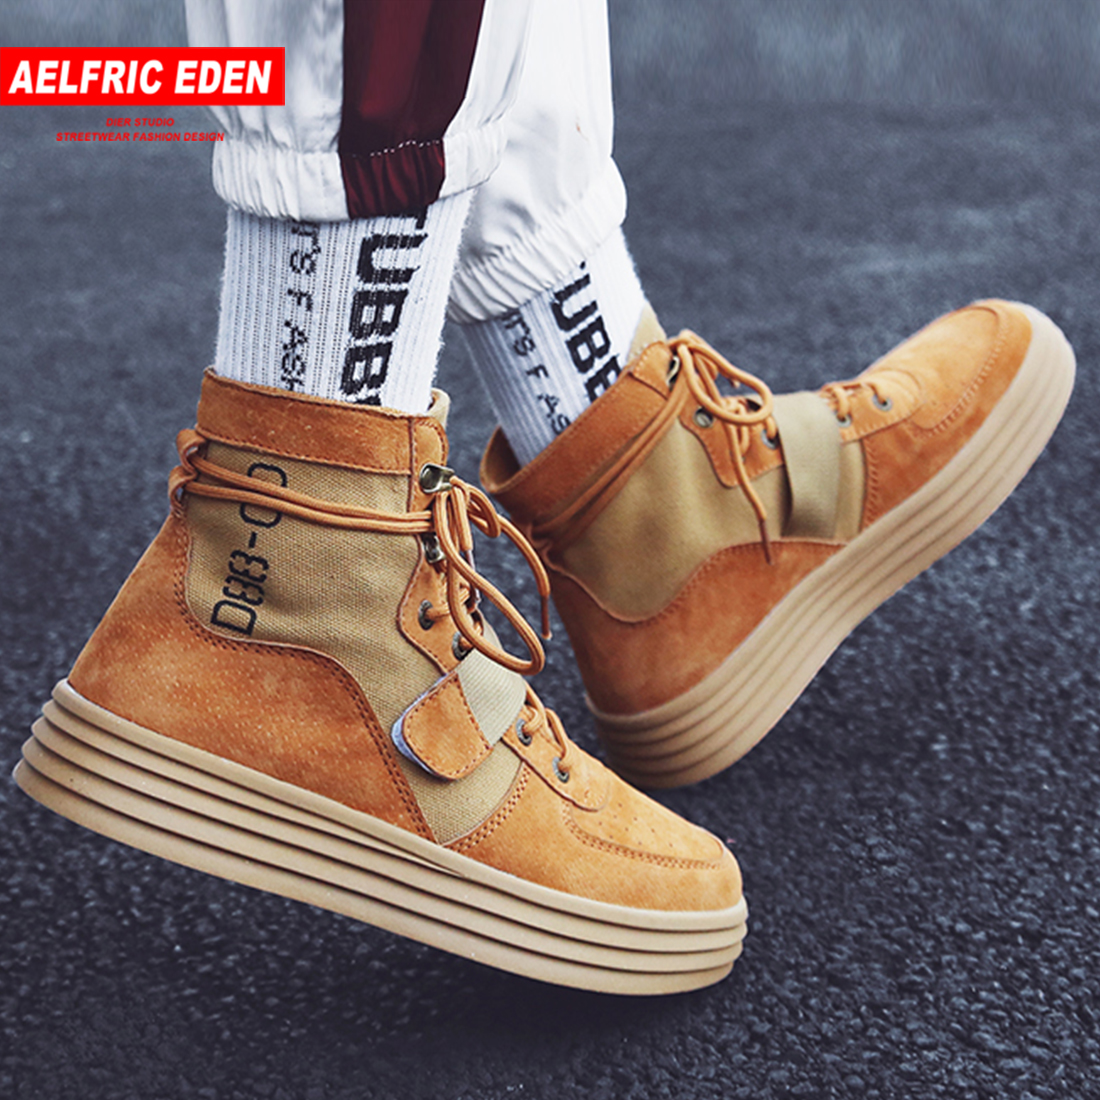 Aelfric Eden Flat Platform Ankle Boots 2019 Spring Autumn Lace up Elastic Band Shoes male High